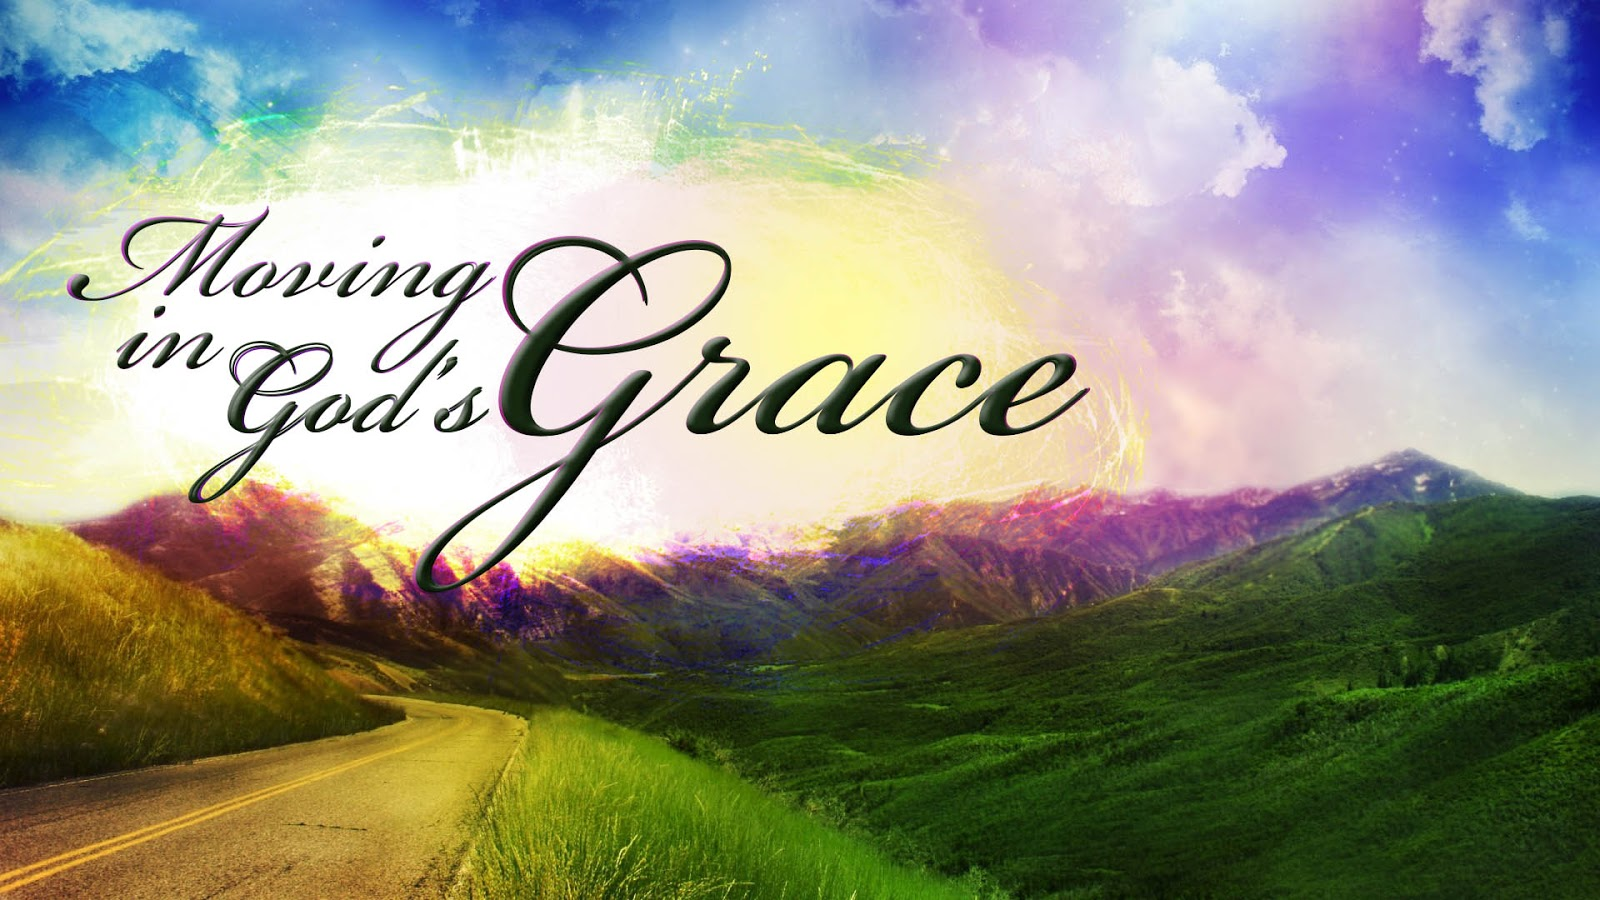 grace-moving-in-gods